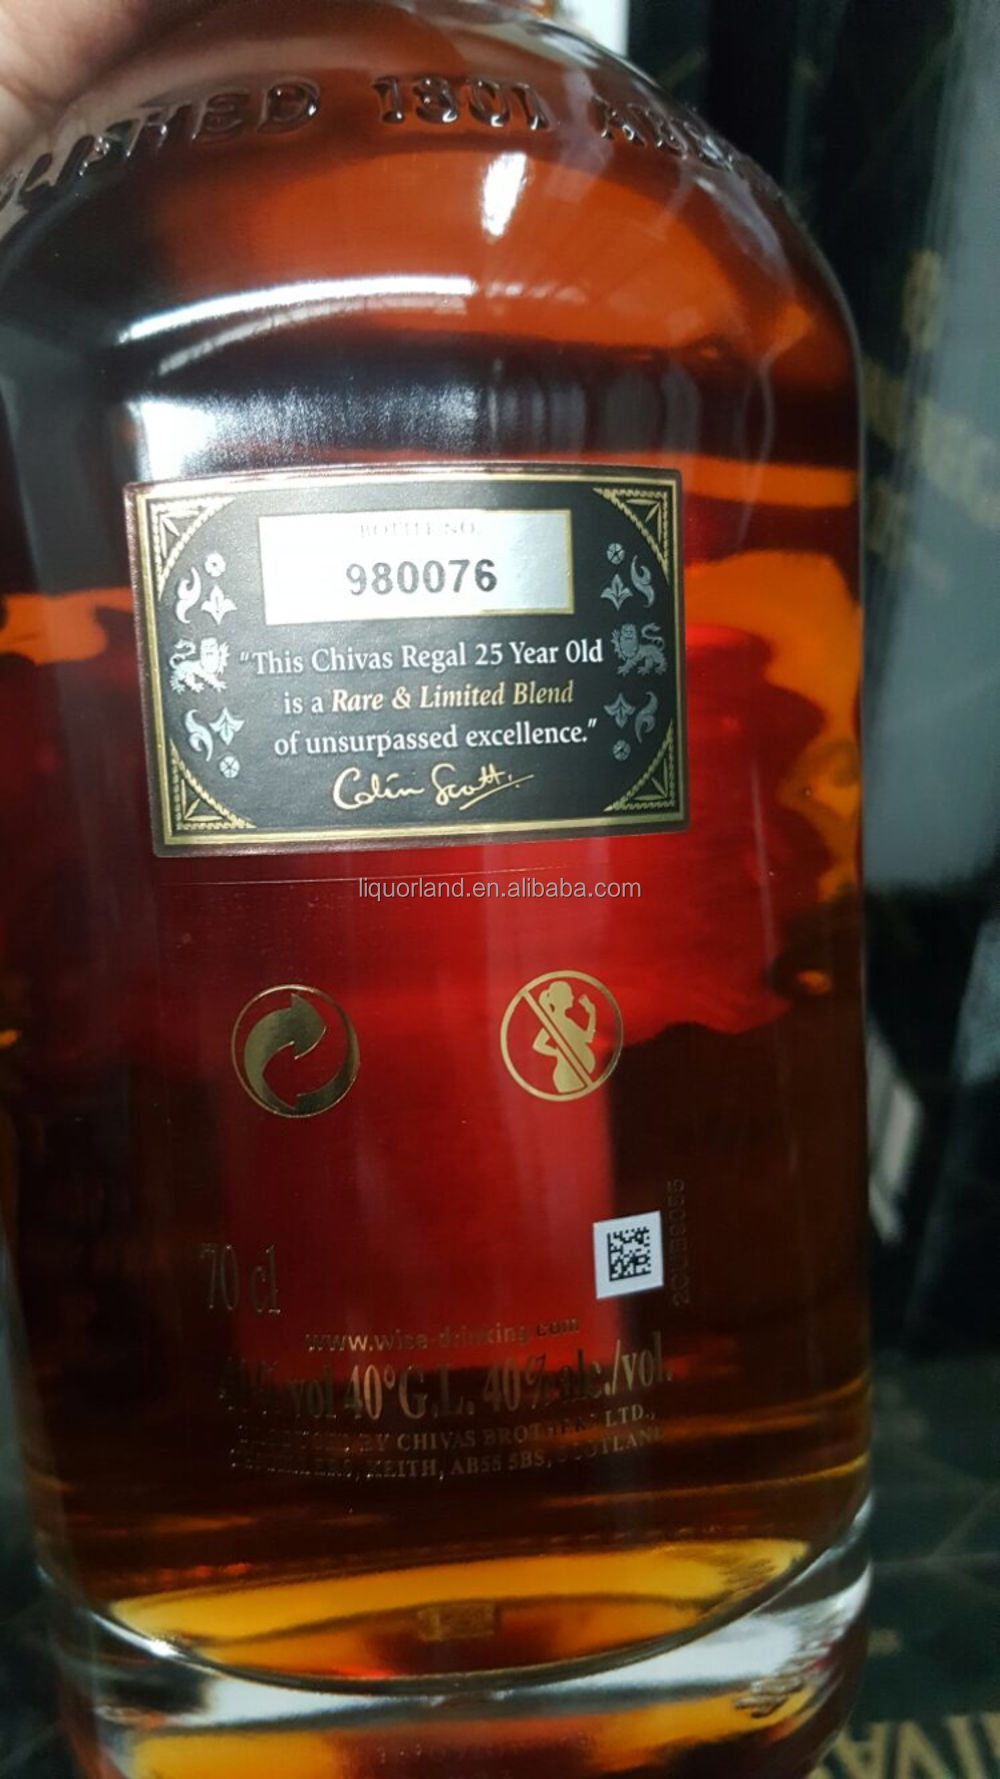 1385cbd2c47 Chivas Regal 25 Years Old Whisky - Buy Scotch Whisky,Coded Gift ...